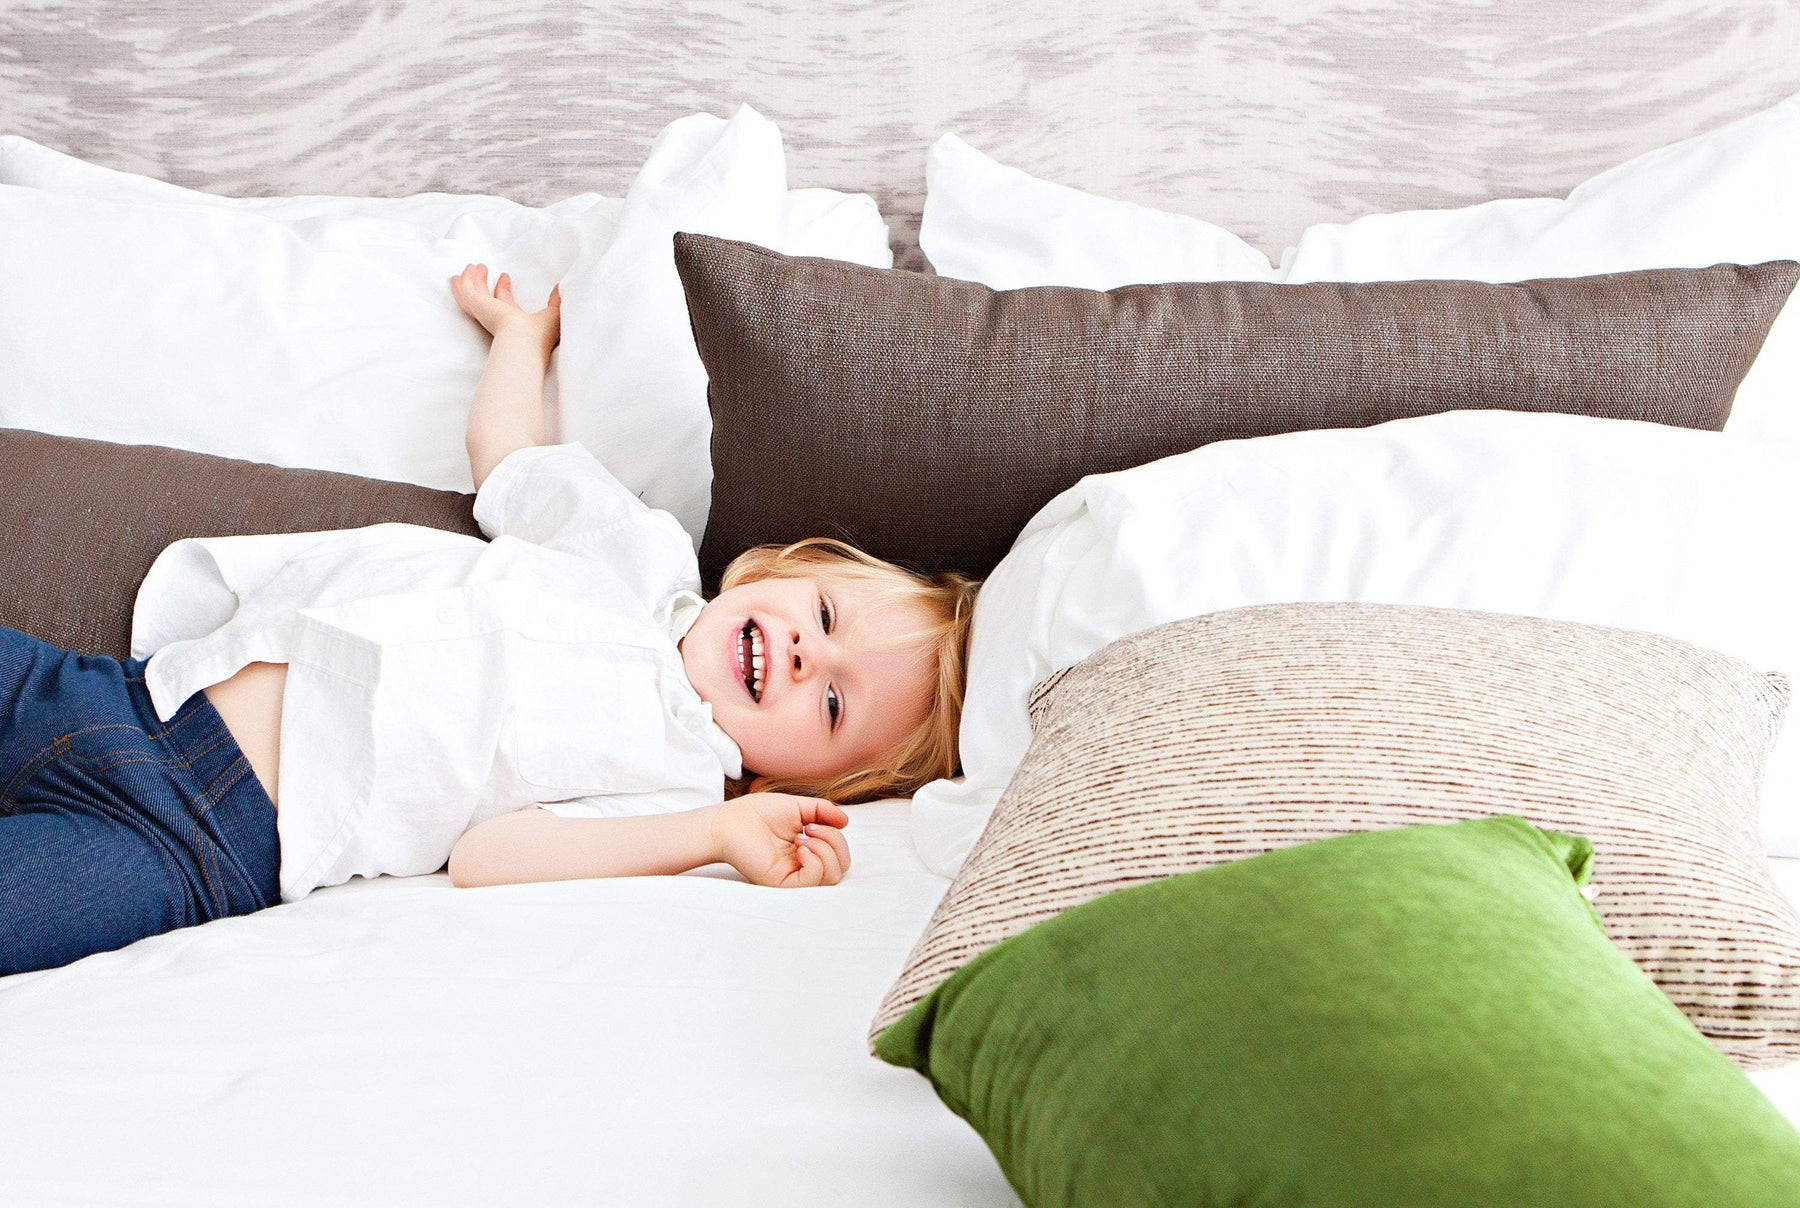 Anti-Microbial Sheets: 5 Important Things to Know